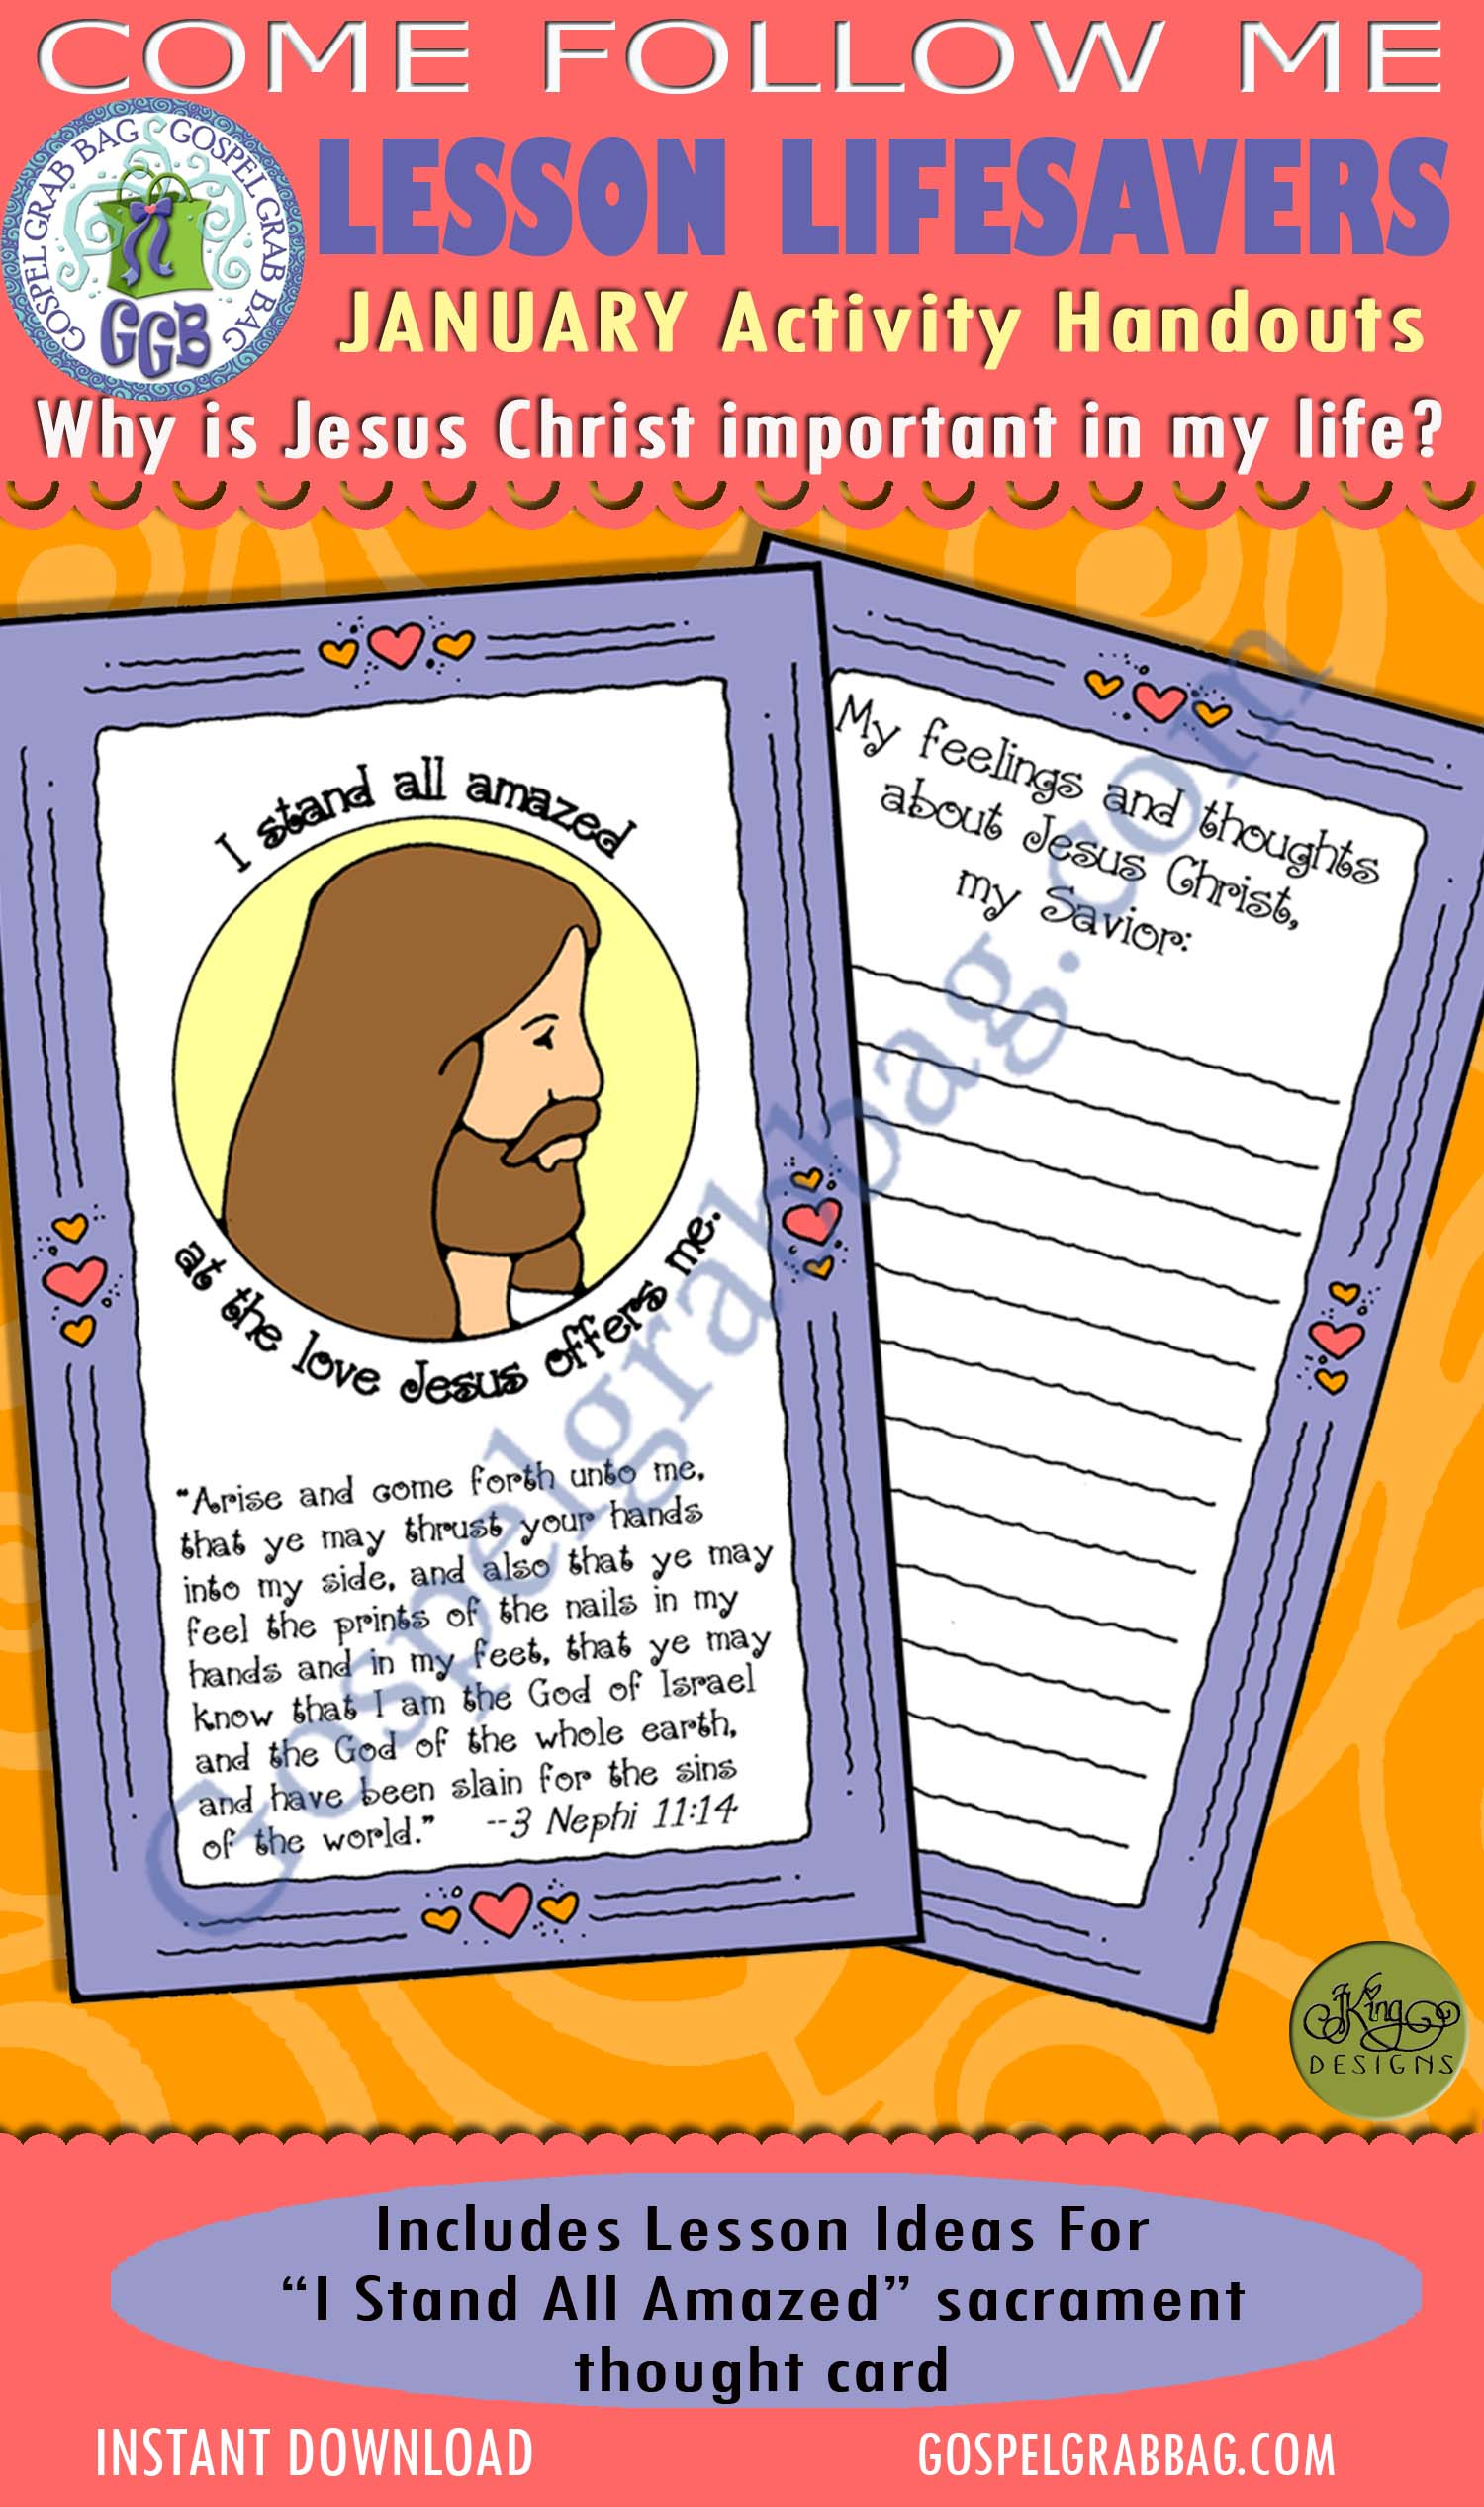 """$1.75 January Lesson 3 - Come Follow Me """"Why is Jesus Christ important in my life?"""" ACTIVITY: I Stand All Amazed sacrament thought card"""